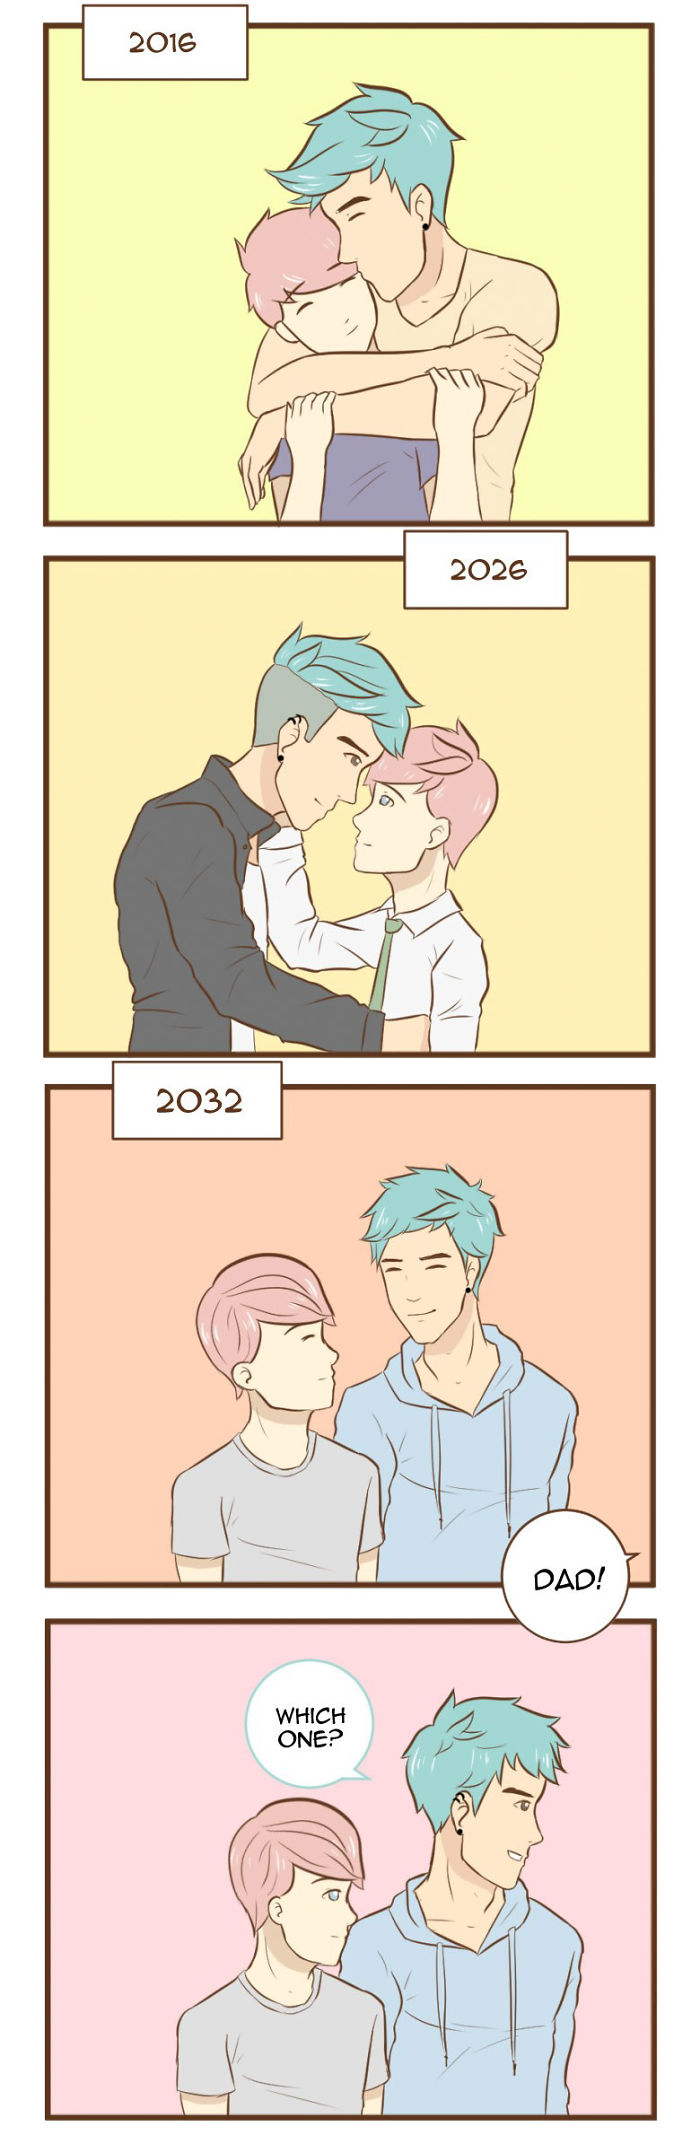 Gay-Couple-Comics-Small-World-Wonsun-Jin